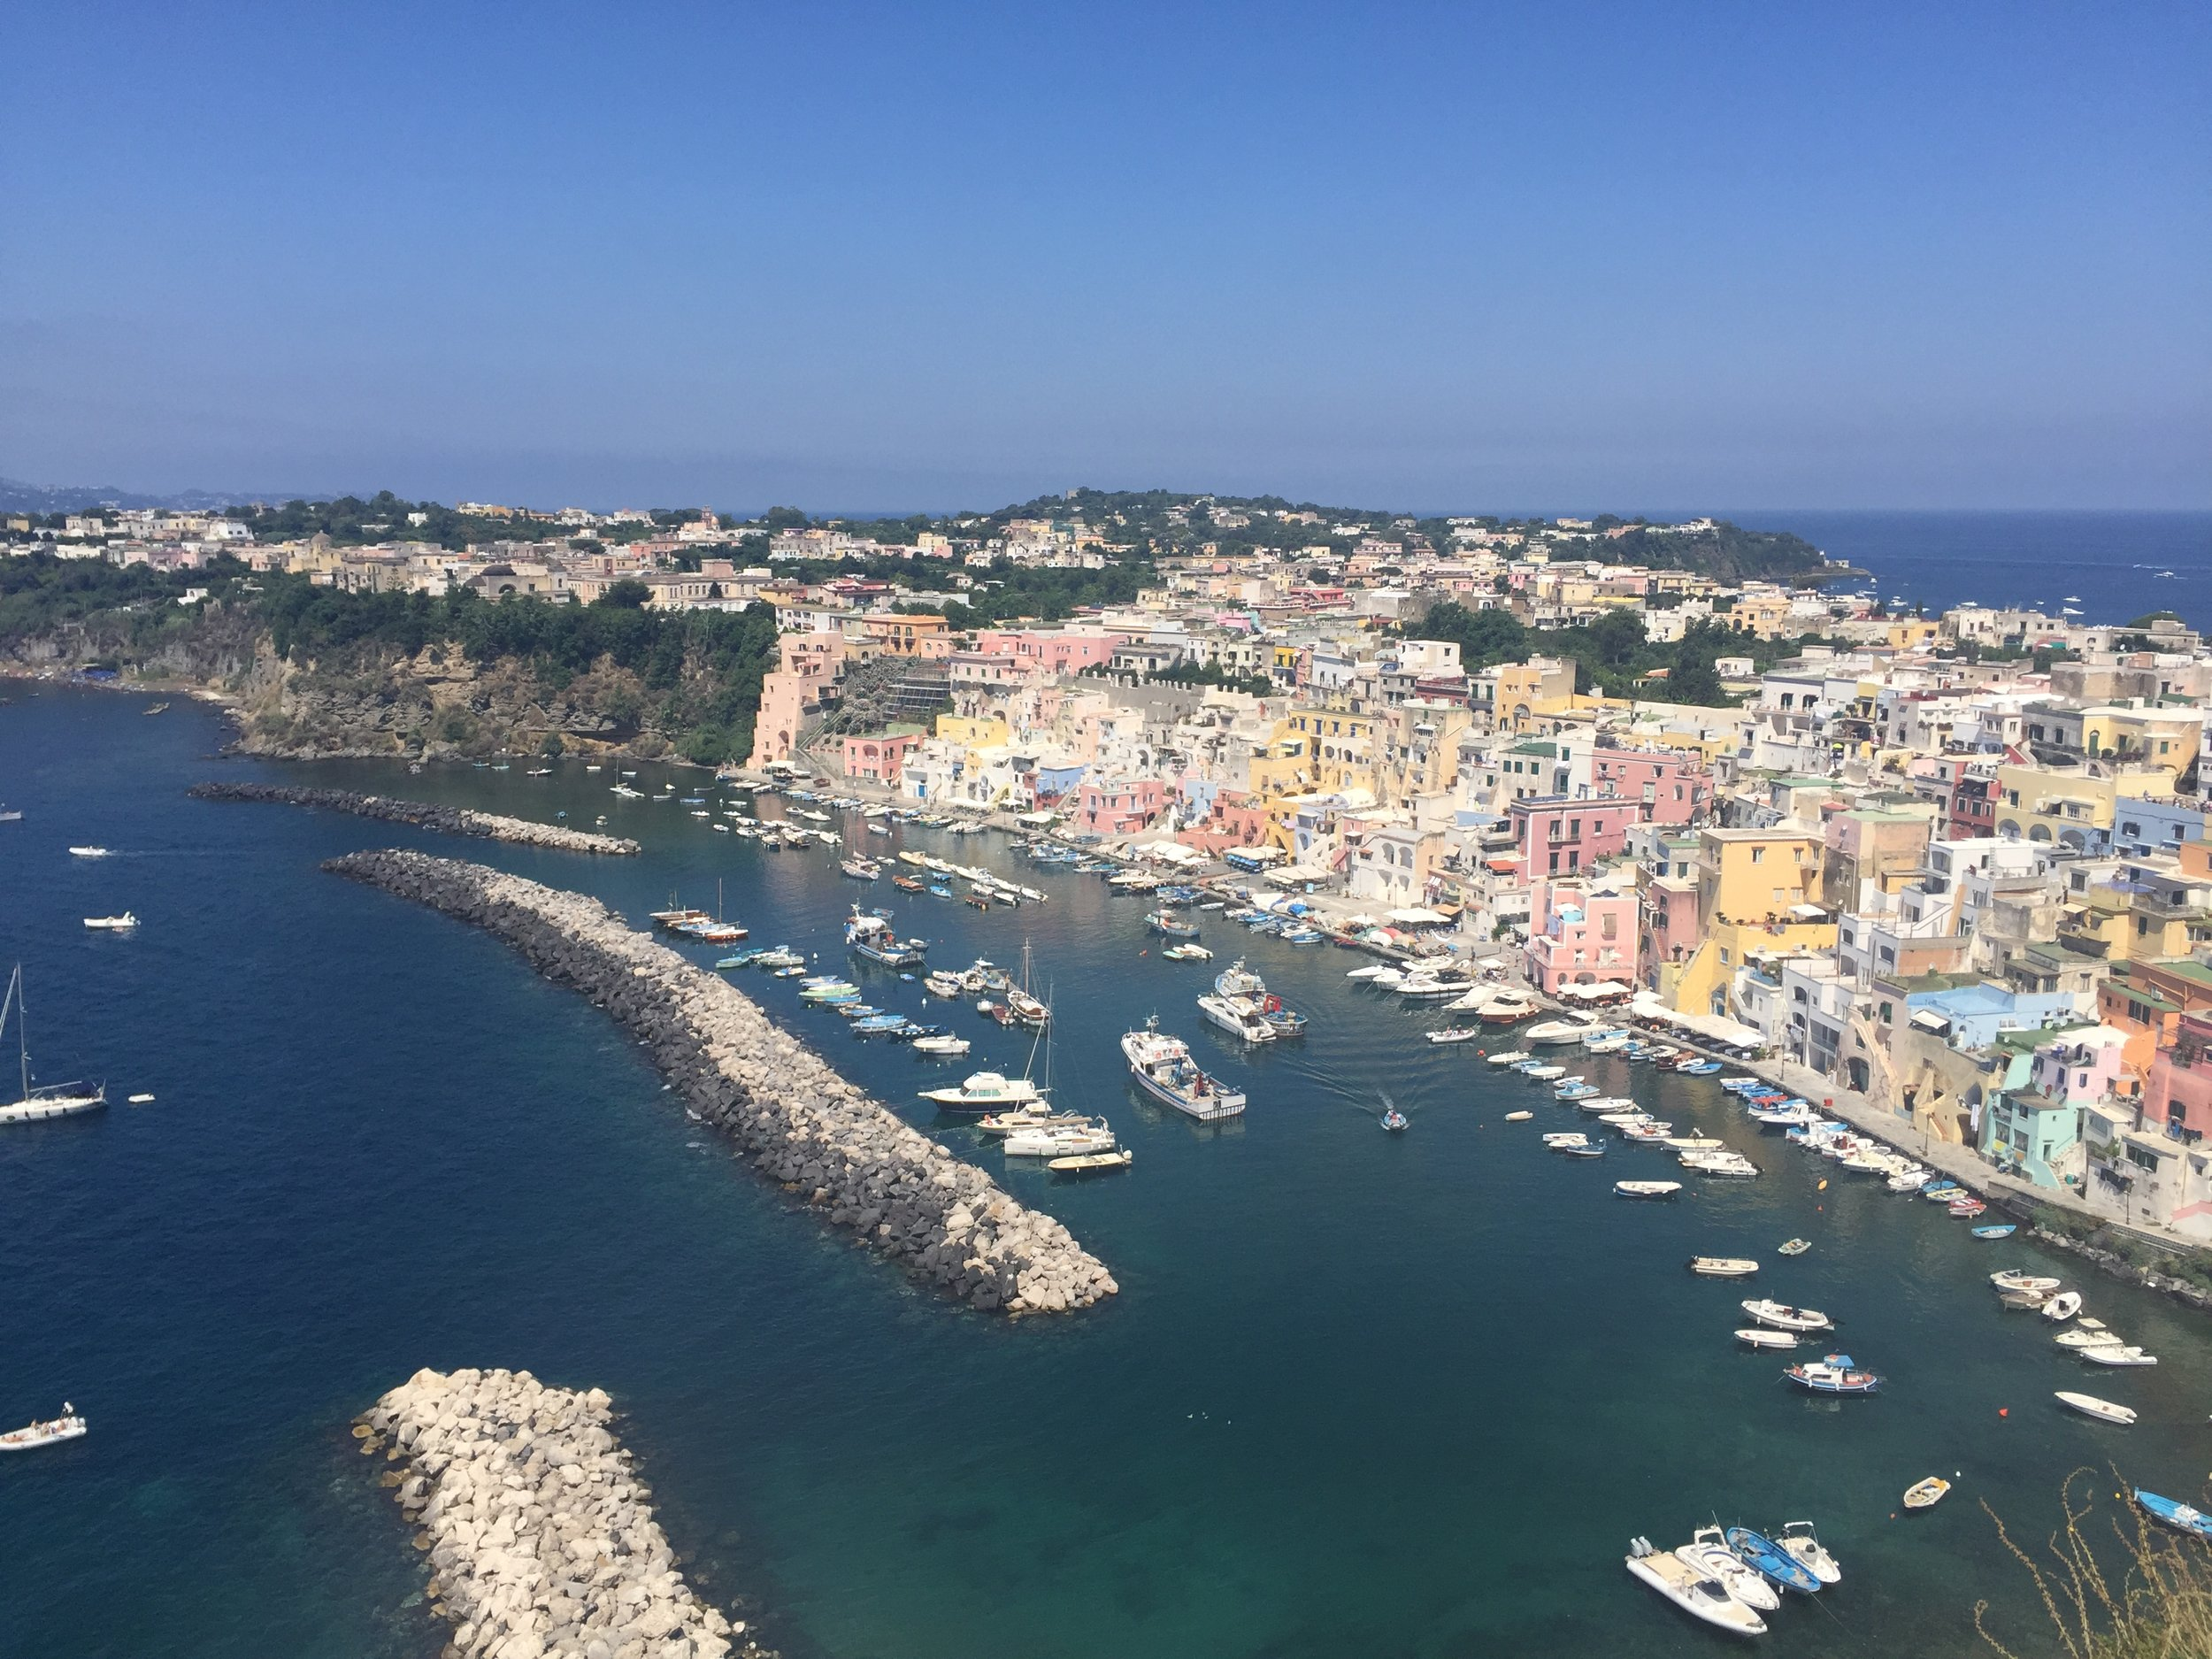 Main harbour on the Isle of Procida, Italy